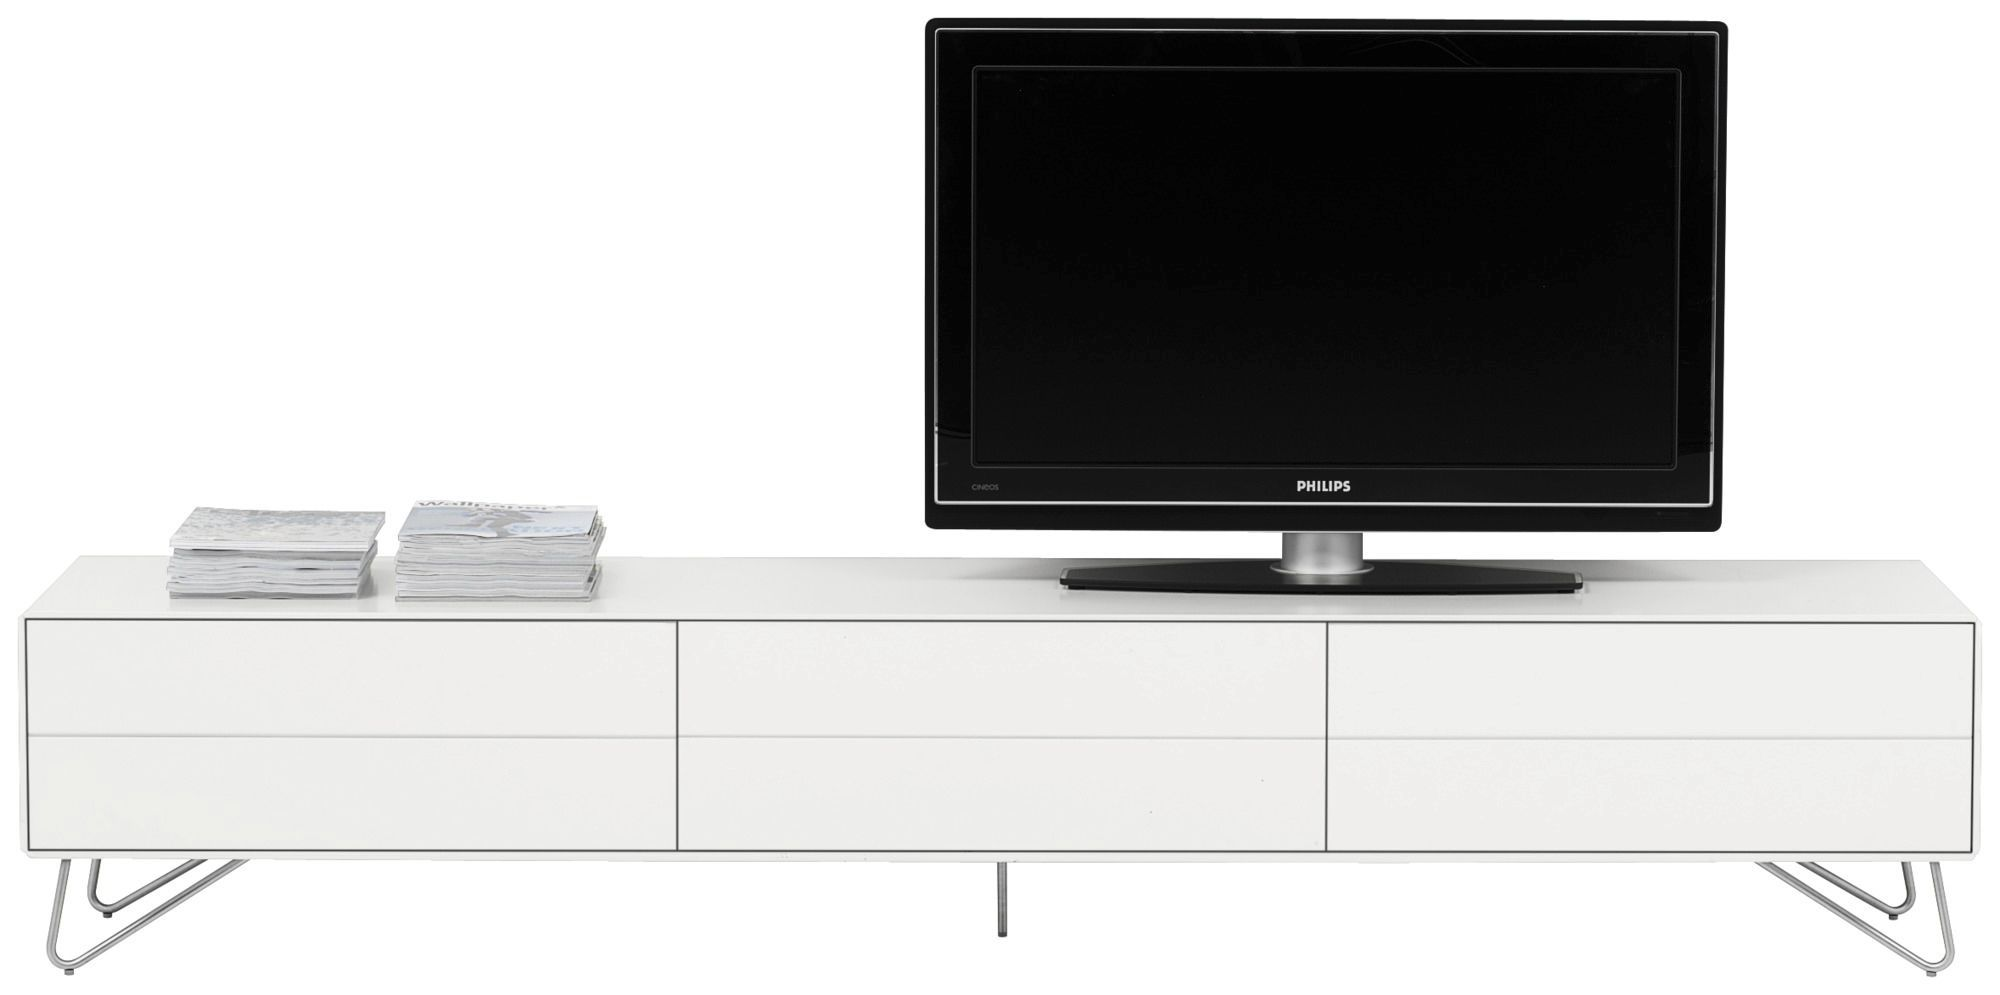 Meuble Tv Philips Trendy Philips Sts With Meuble Tv Philips  # Meuble Tv Pour Ecran Plat